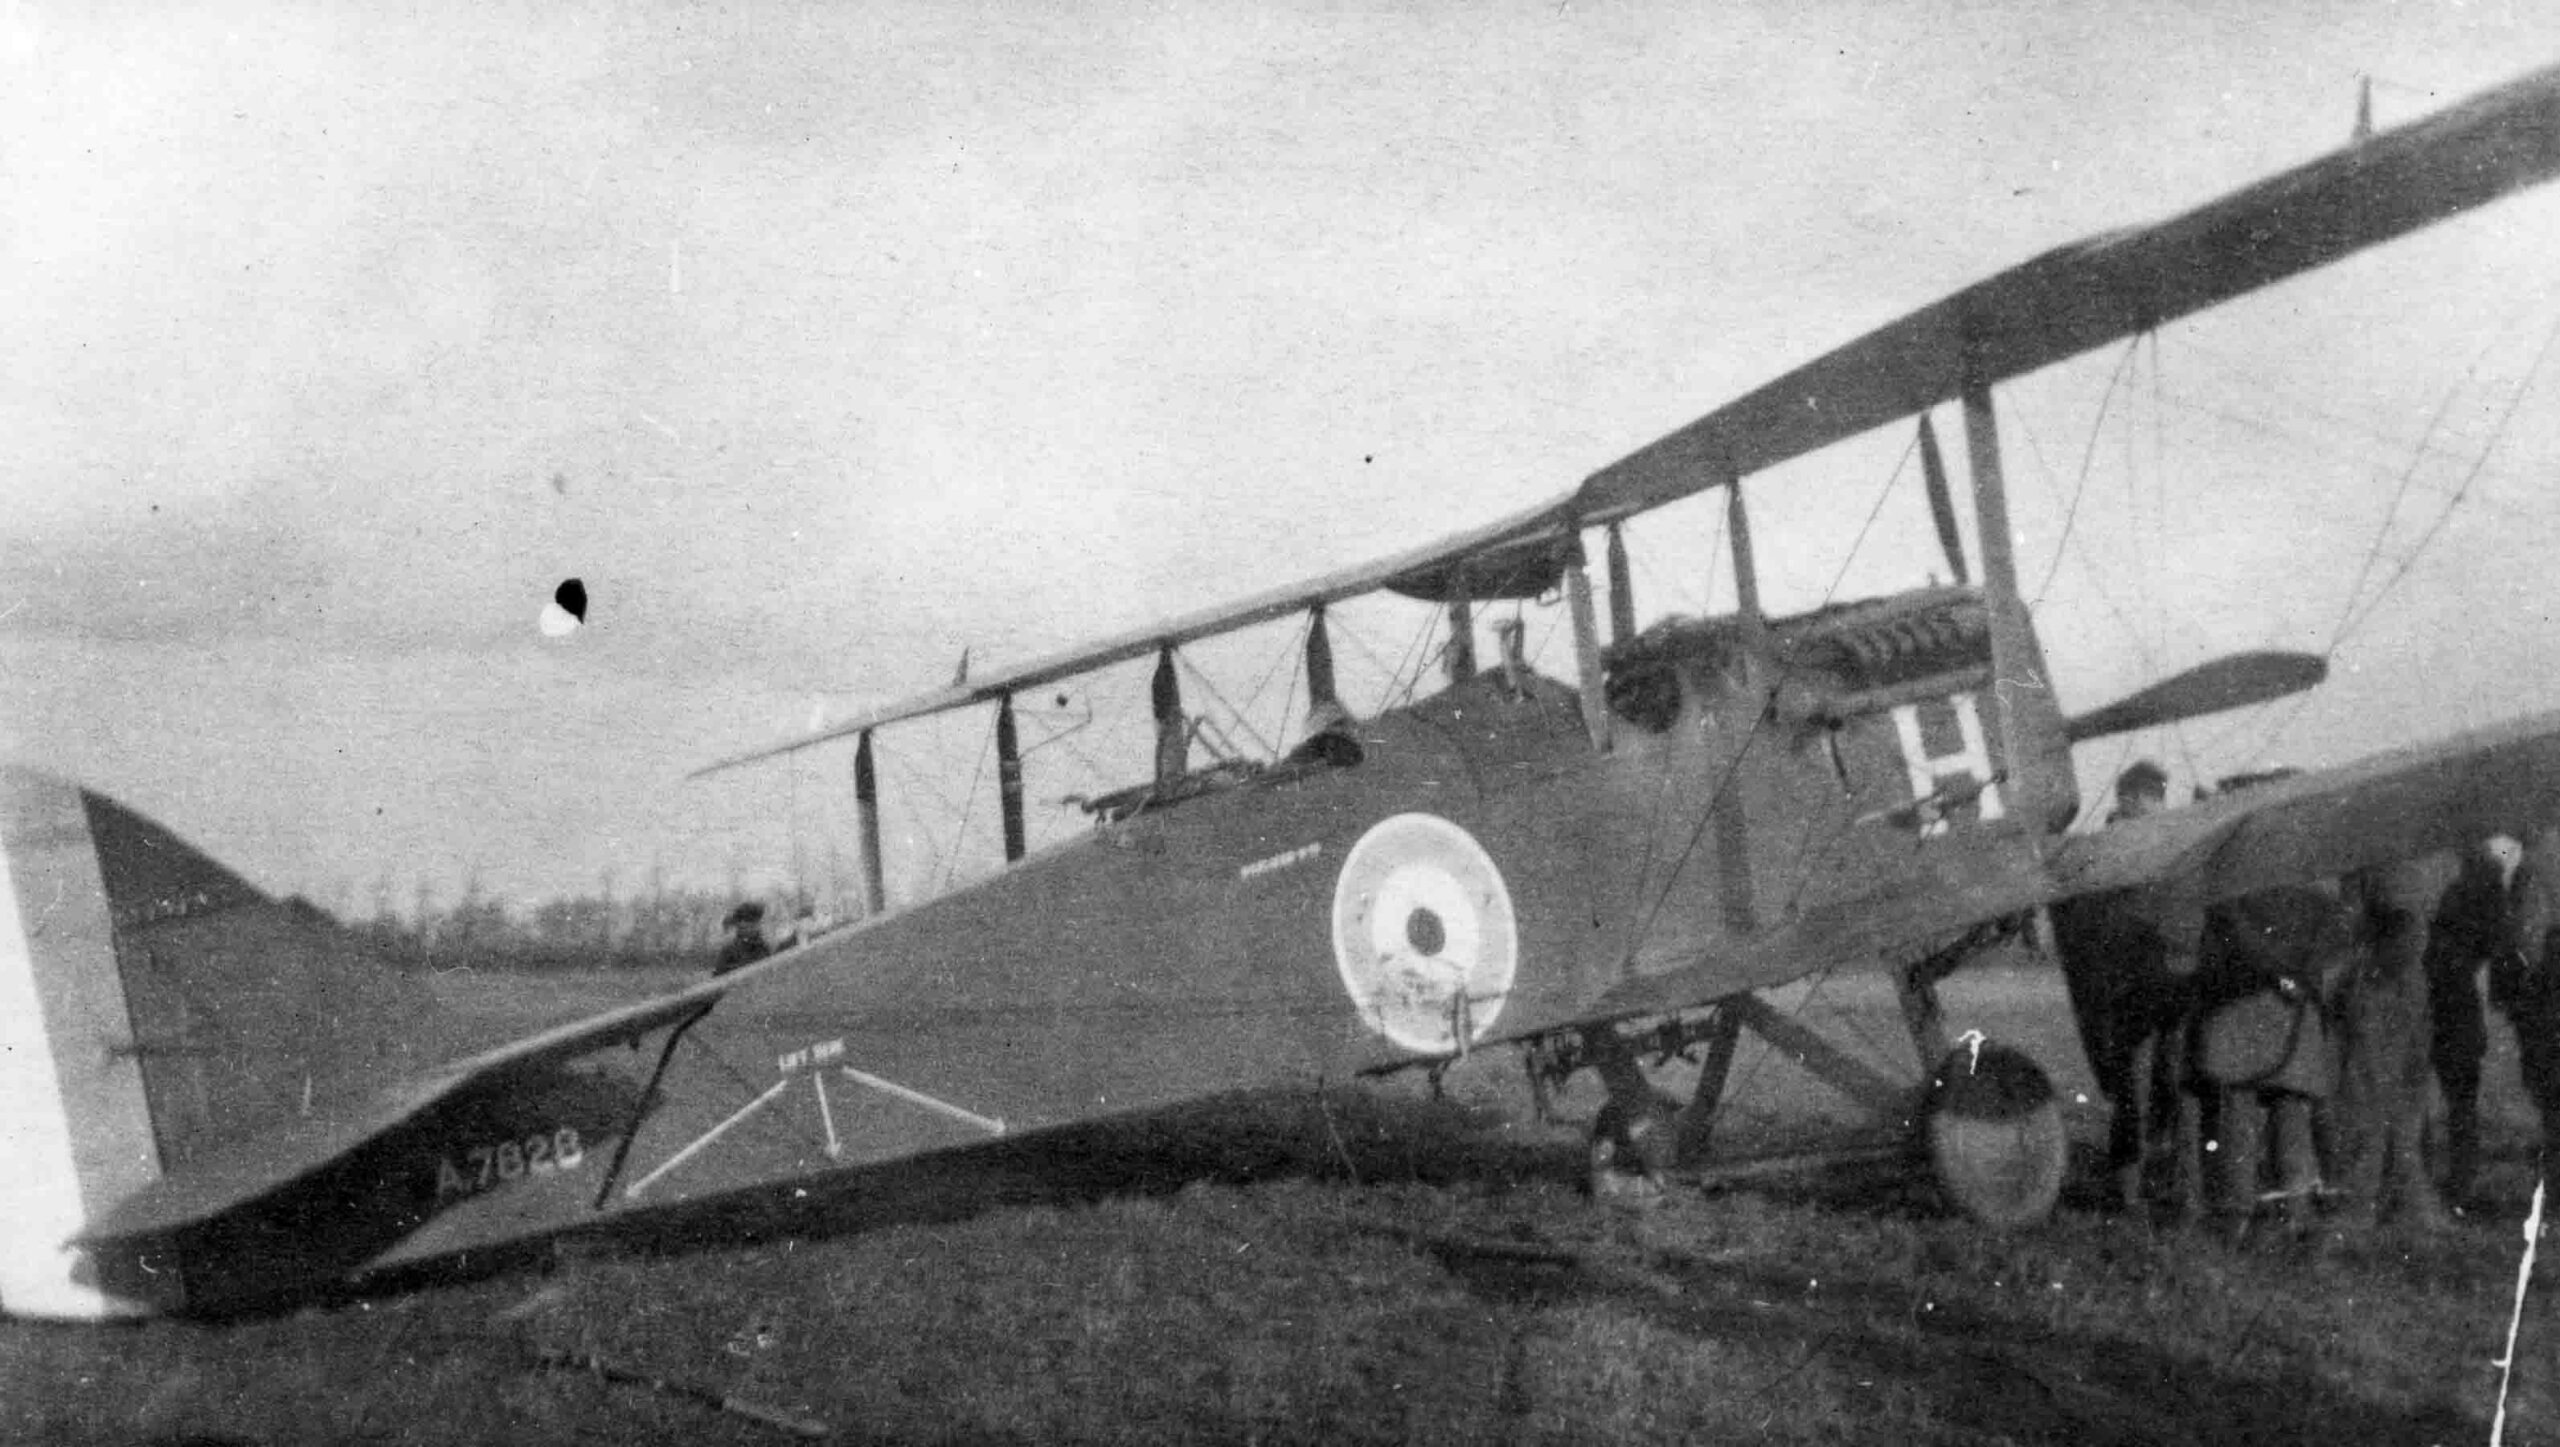 An Airco DH4 of No. 55 Squadron, as flown by Mackay and Gompertz